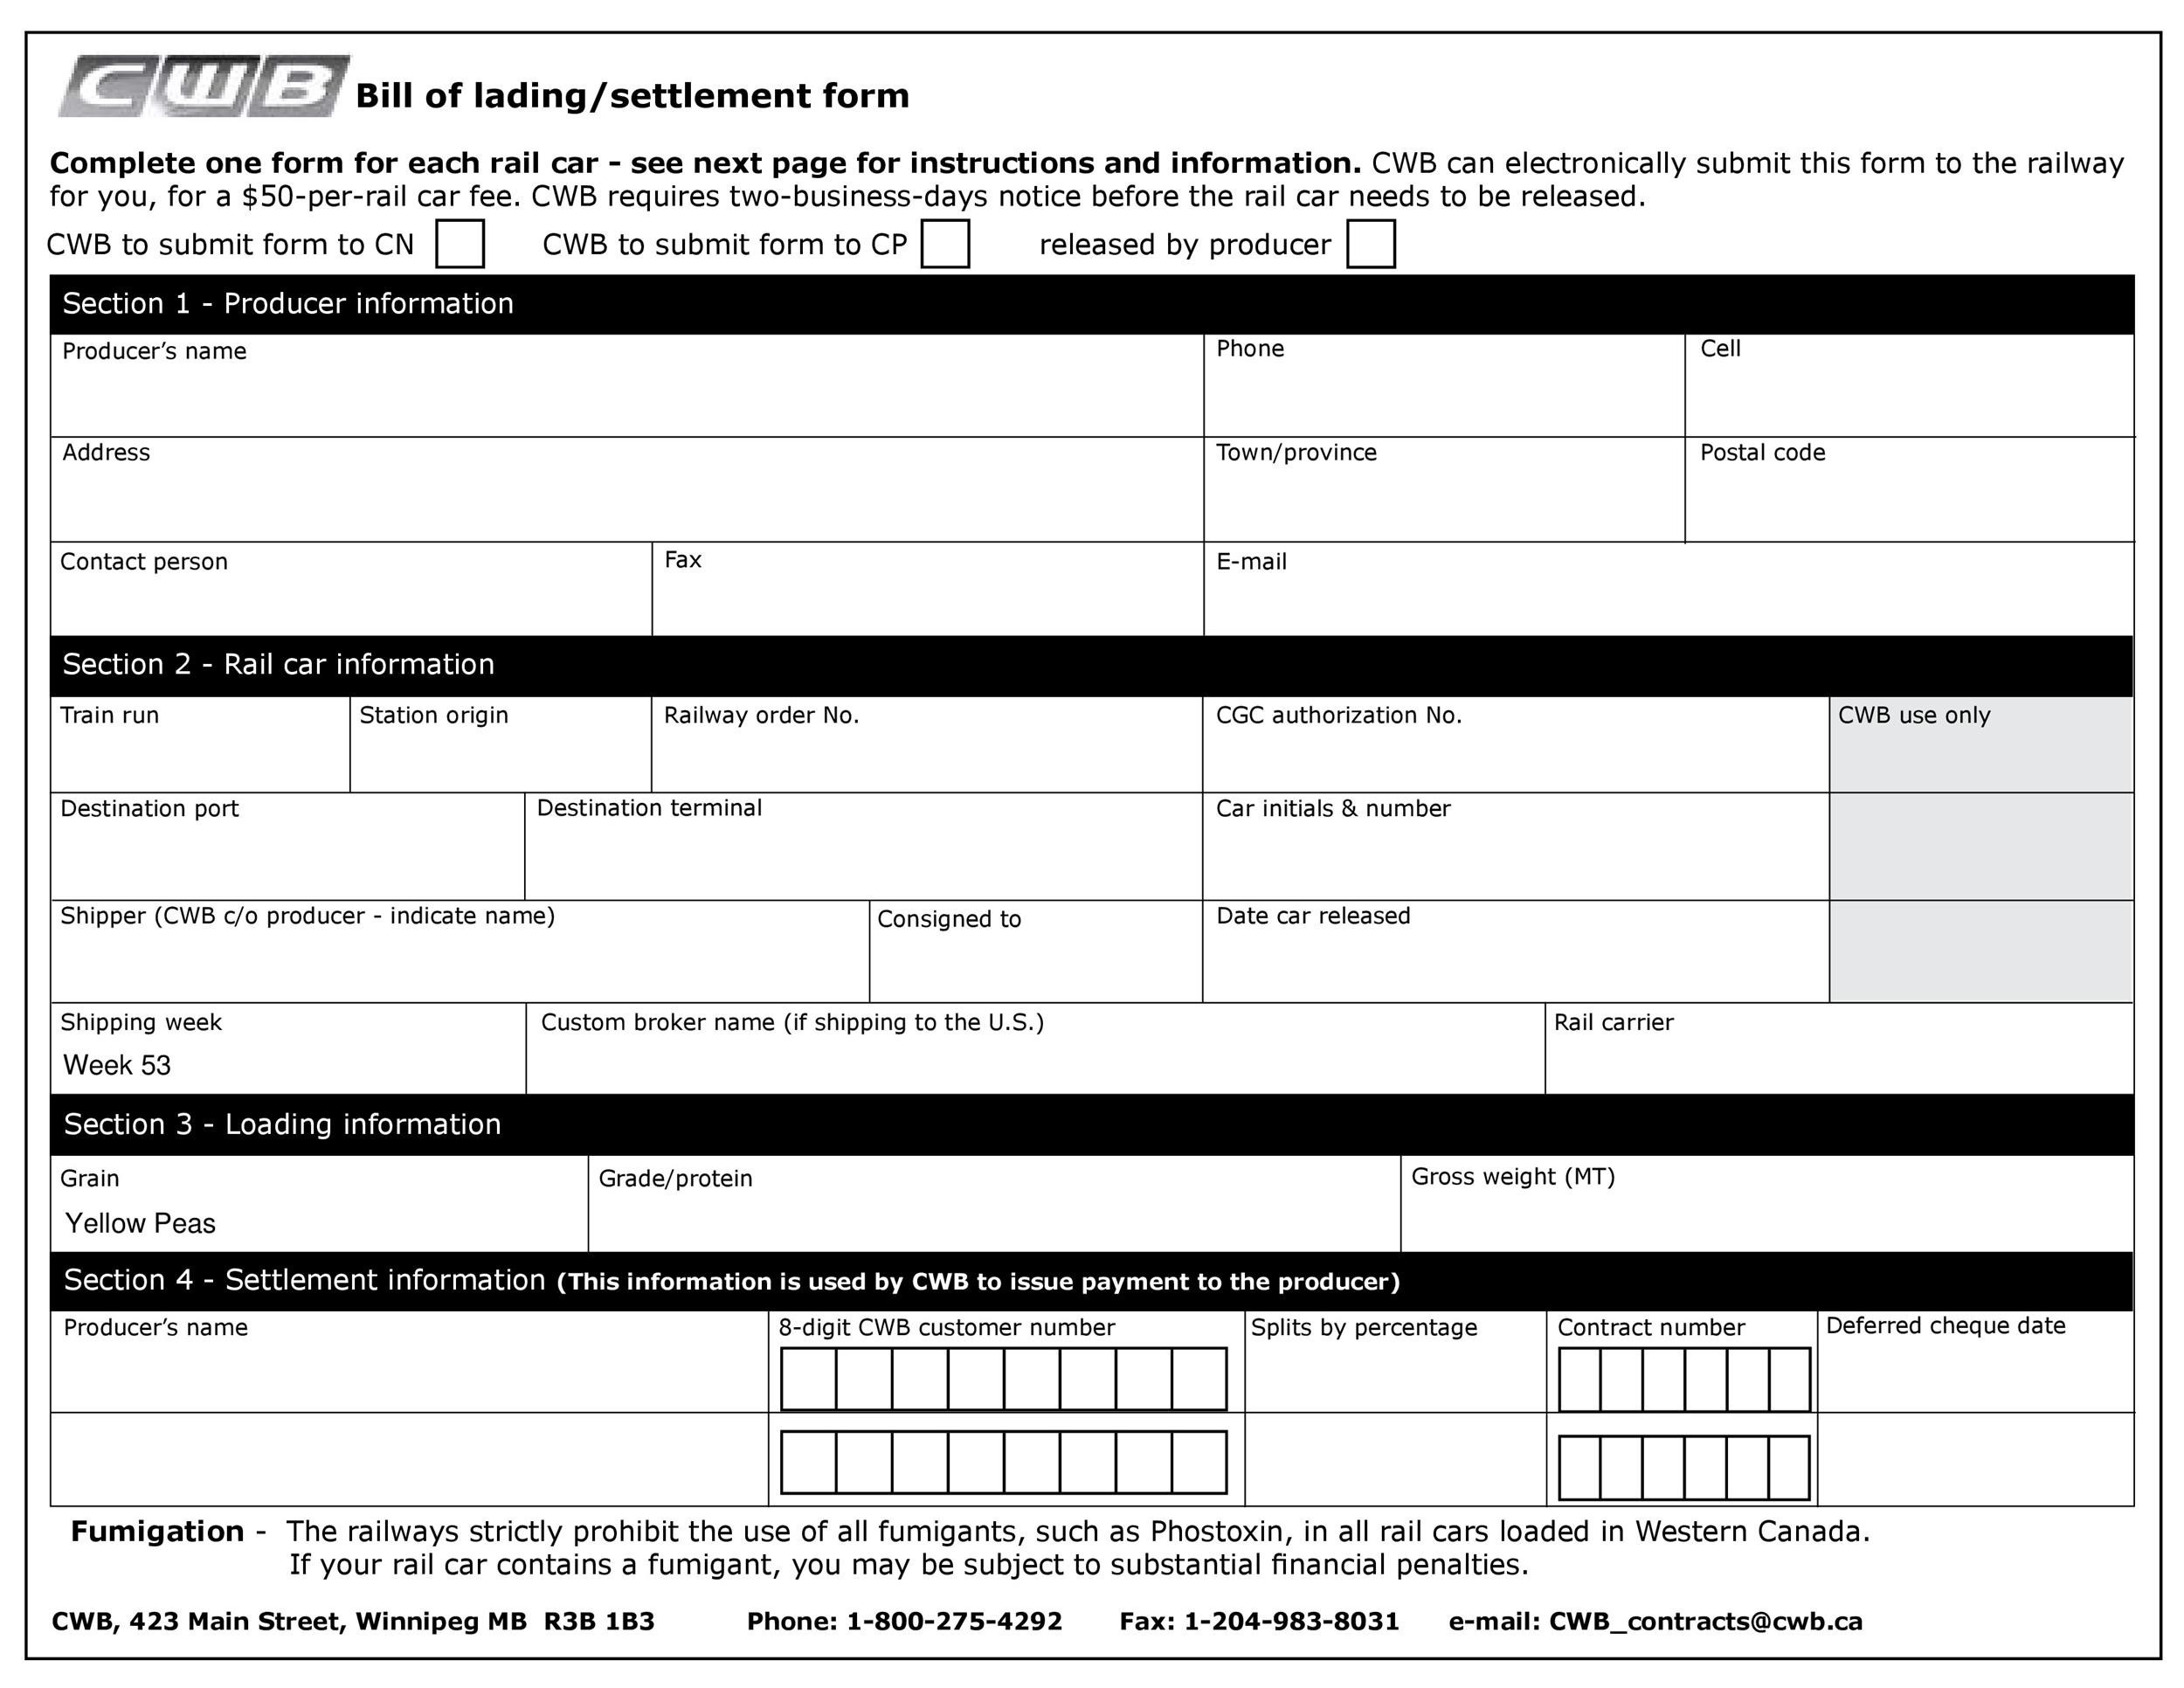 40 Free Bill of Lading Forms  Templates - Template Lab - bill of lading form free